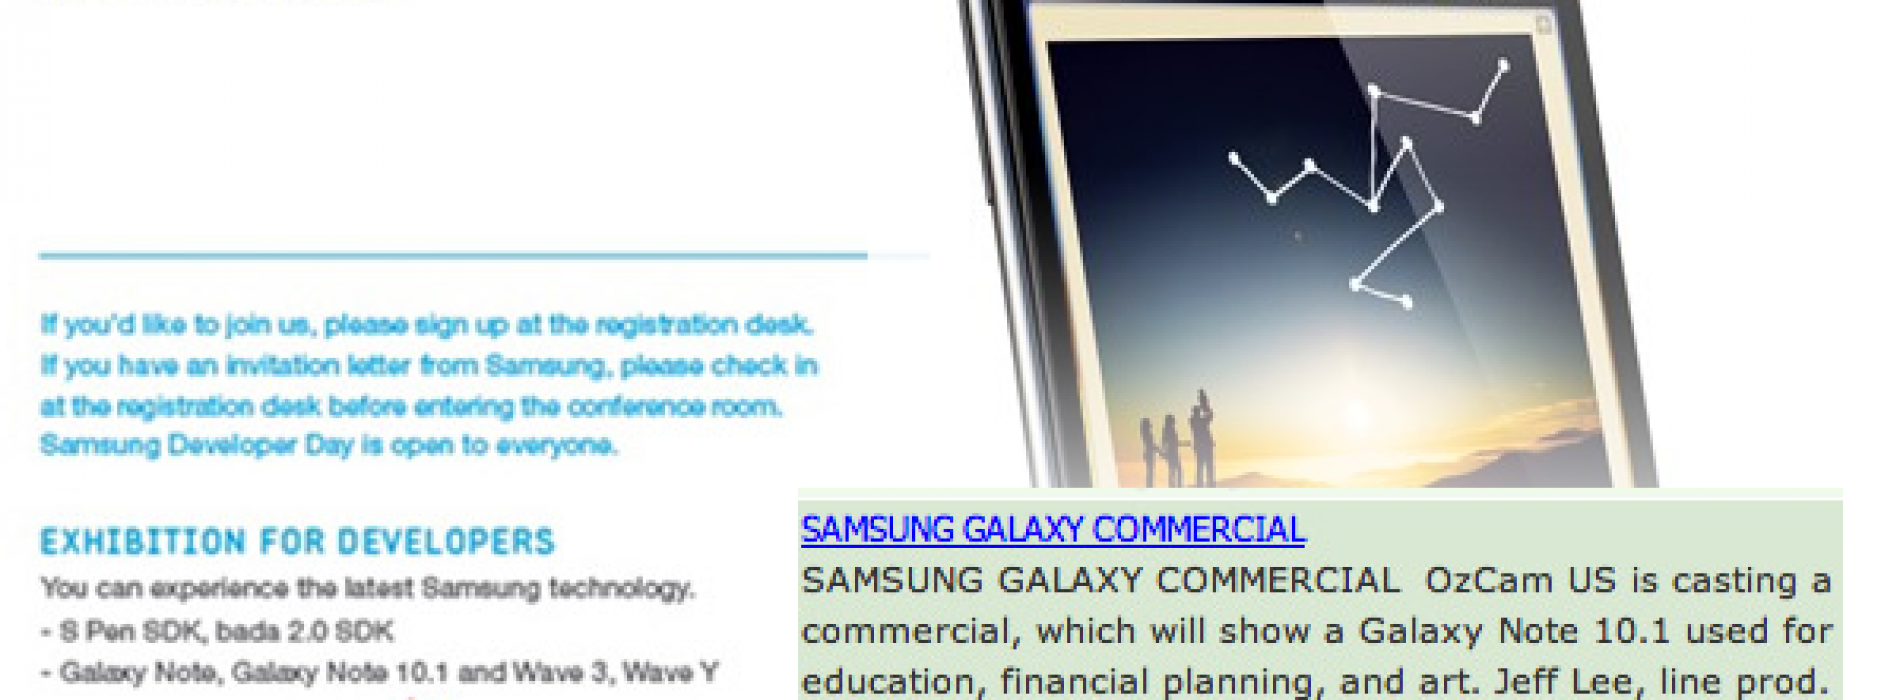 Is Samsung to unveil Galaxy Note 10.1 at Mobile World Congress?